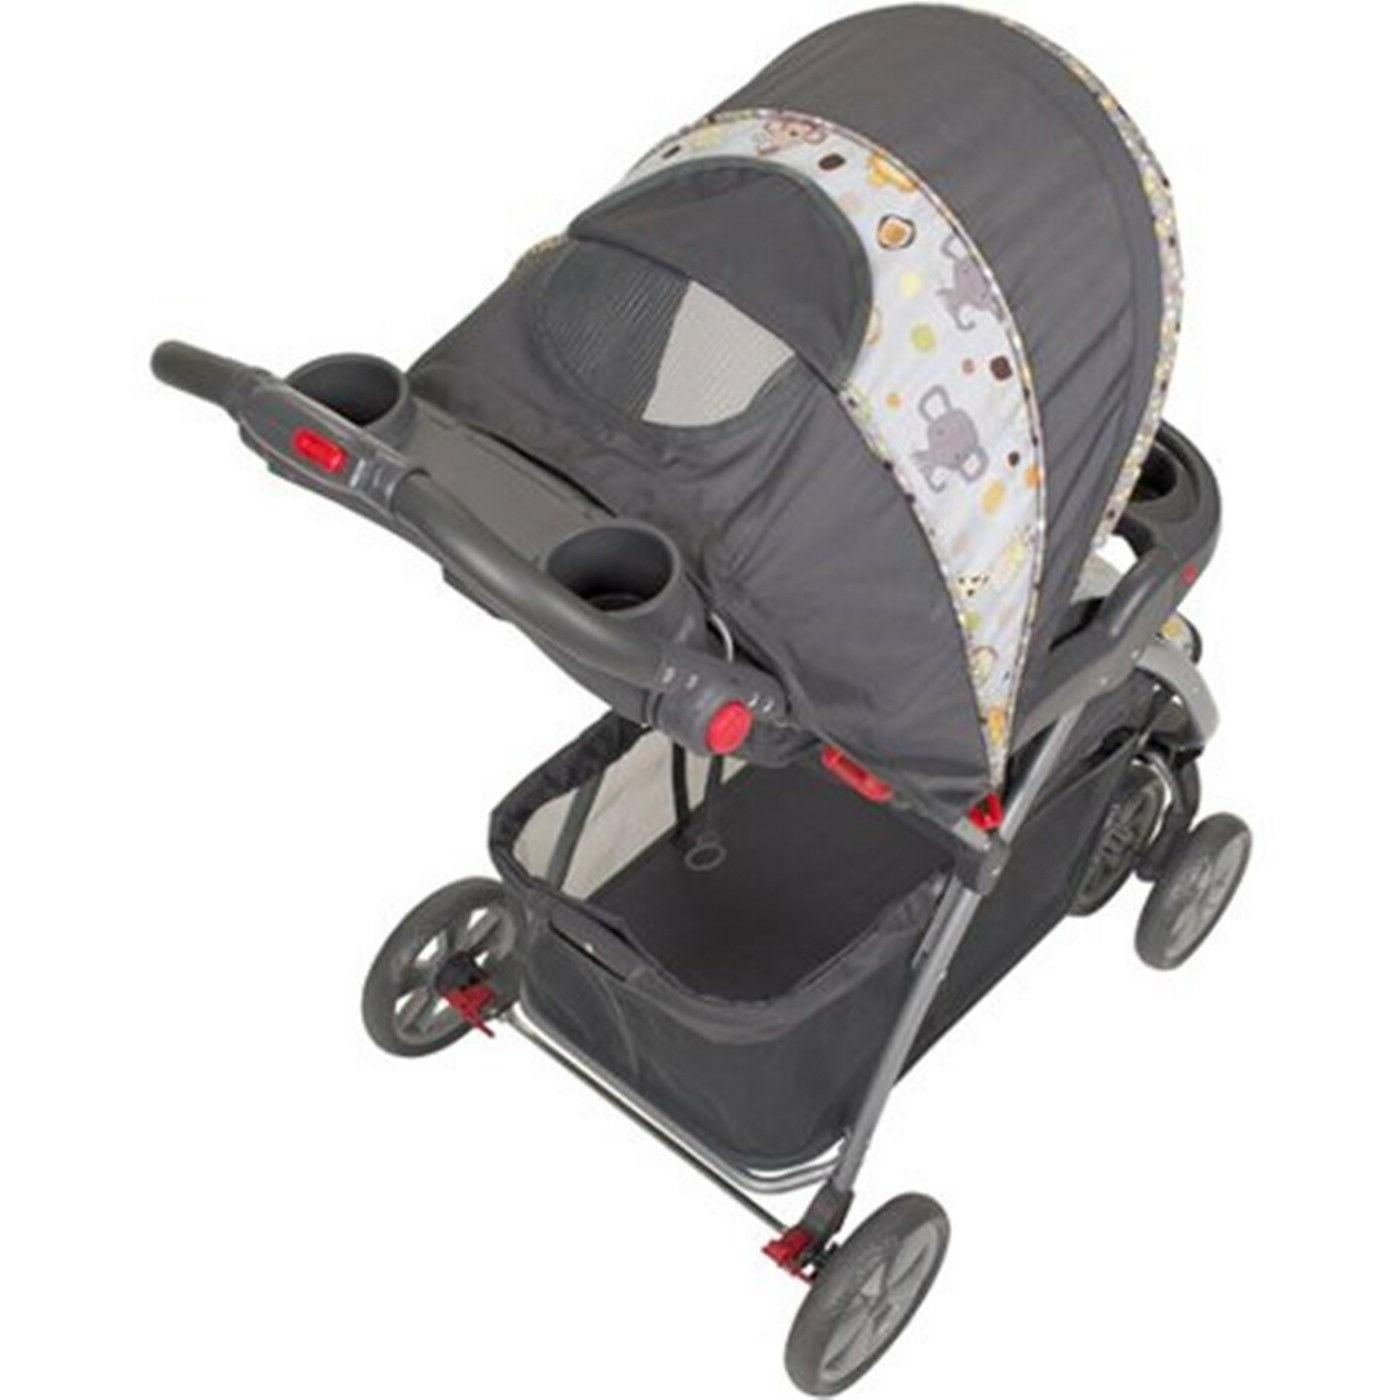 Stroller Baby Trend System Car Can